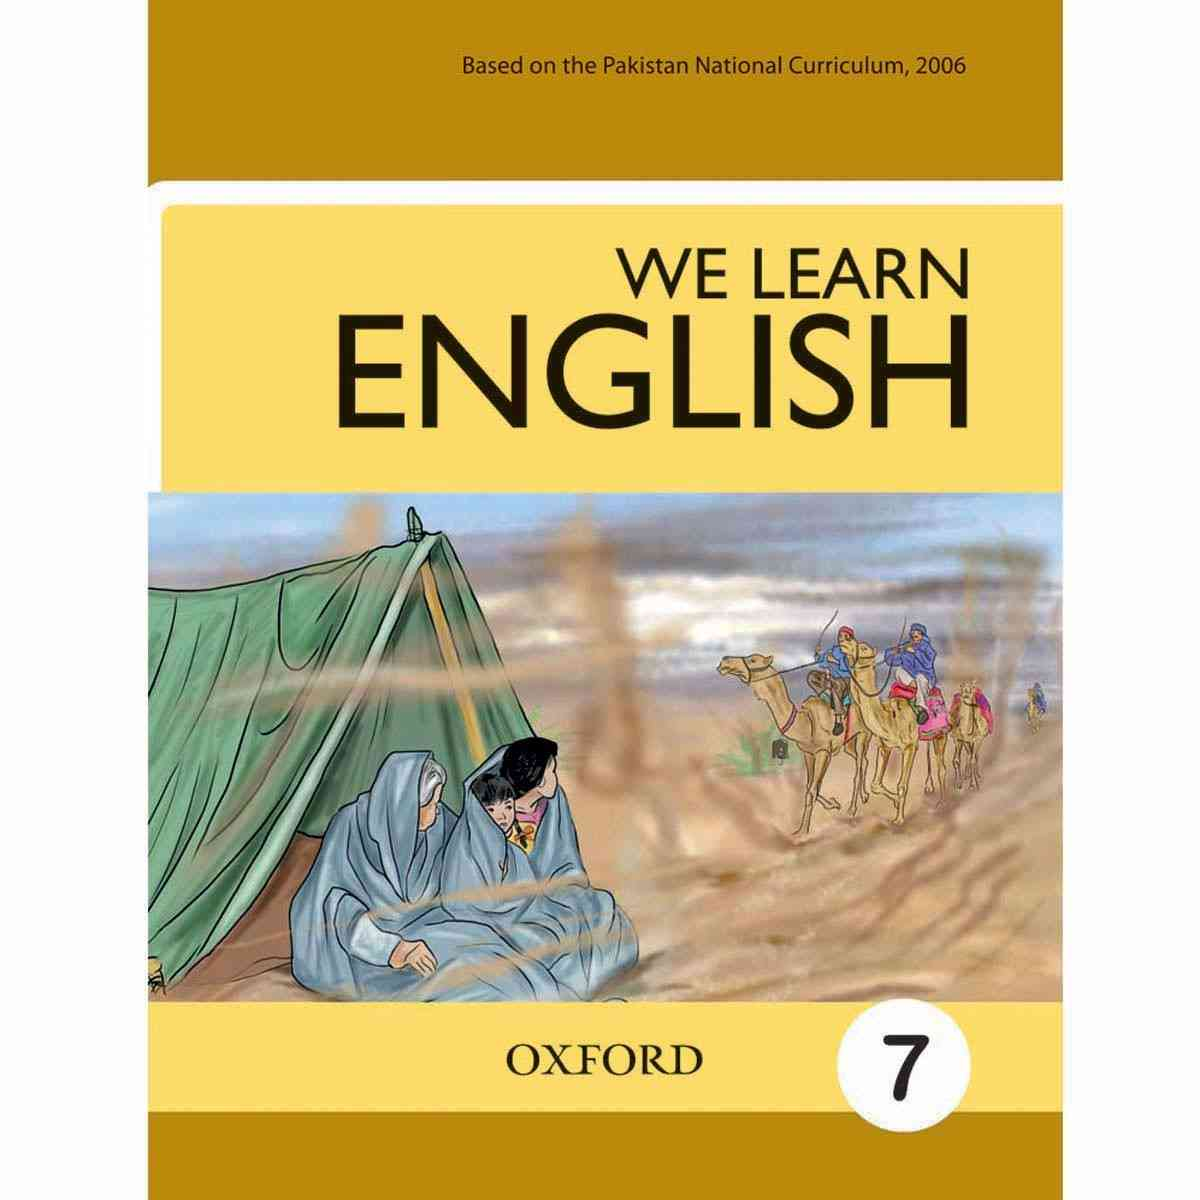 Oxford Books We Learn English Book 7